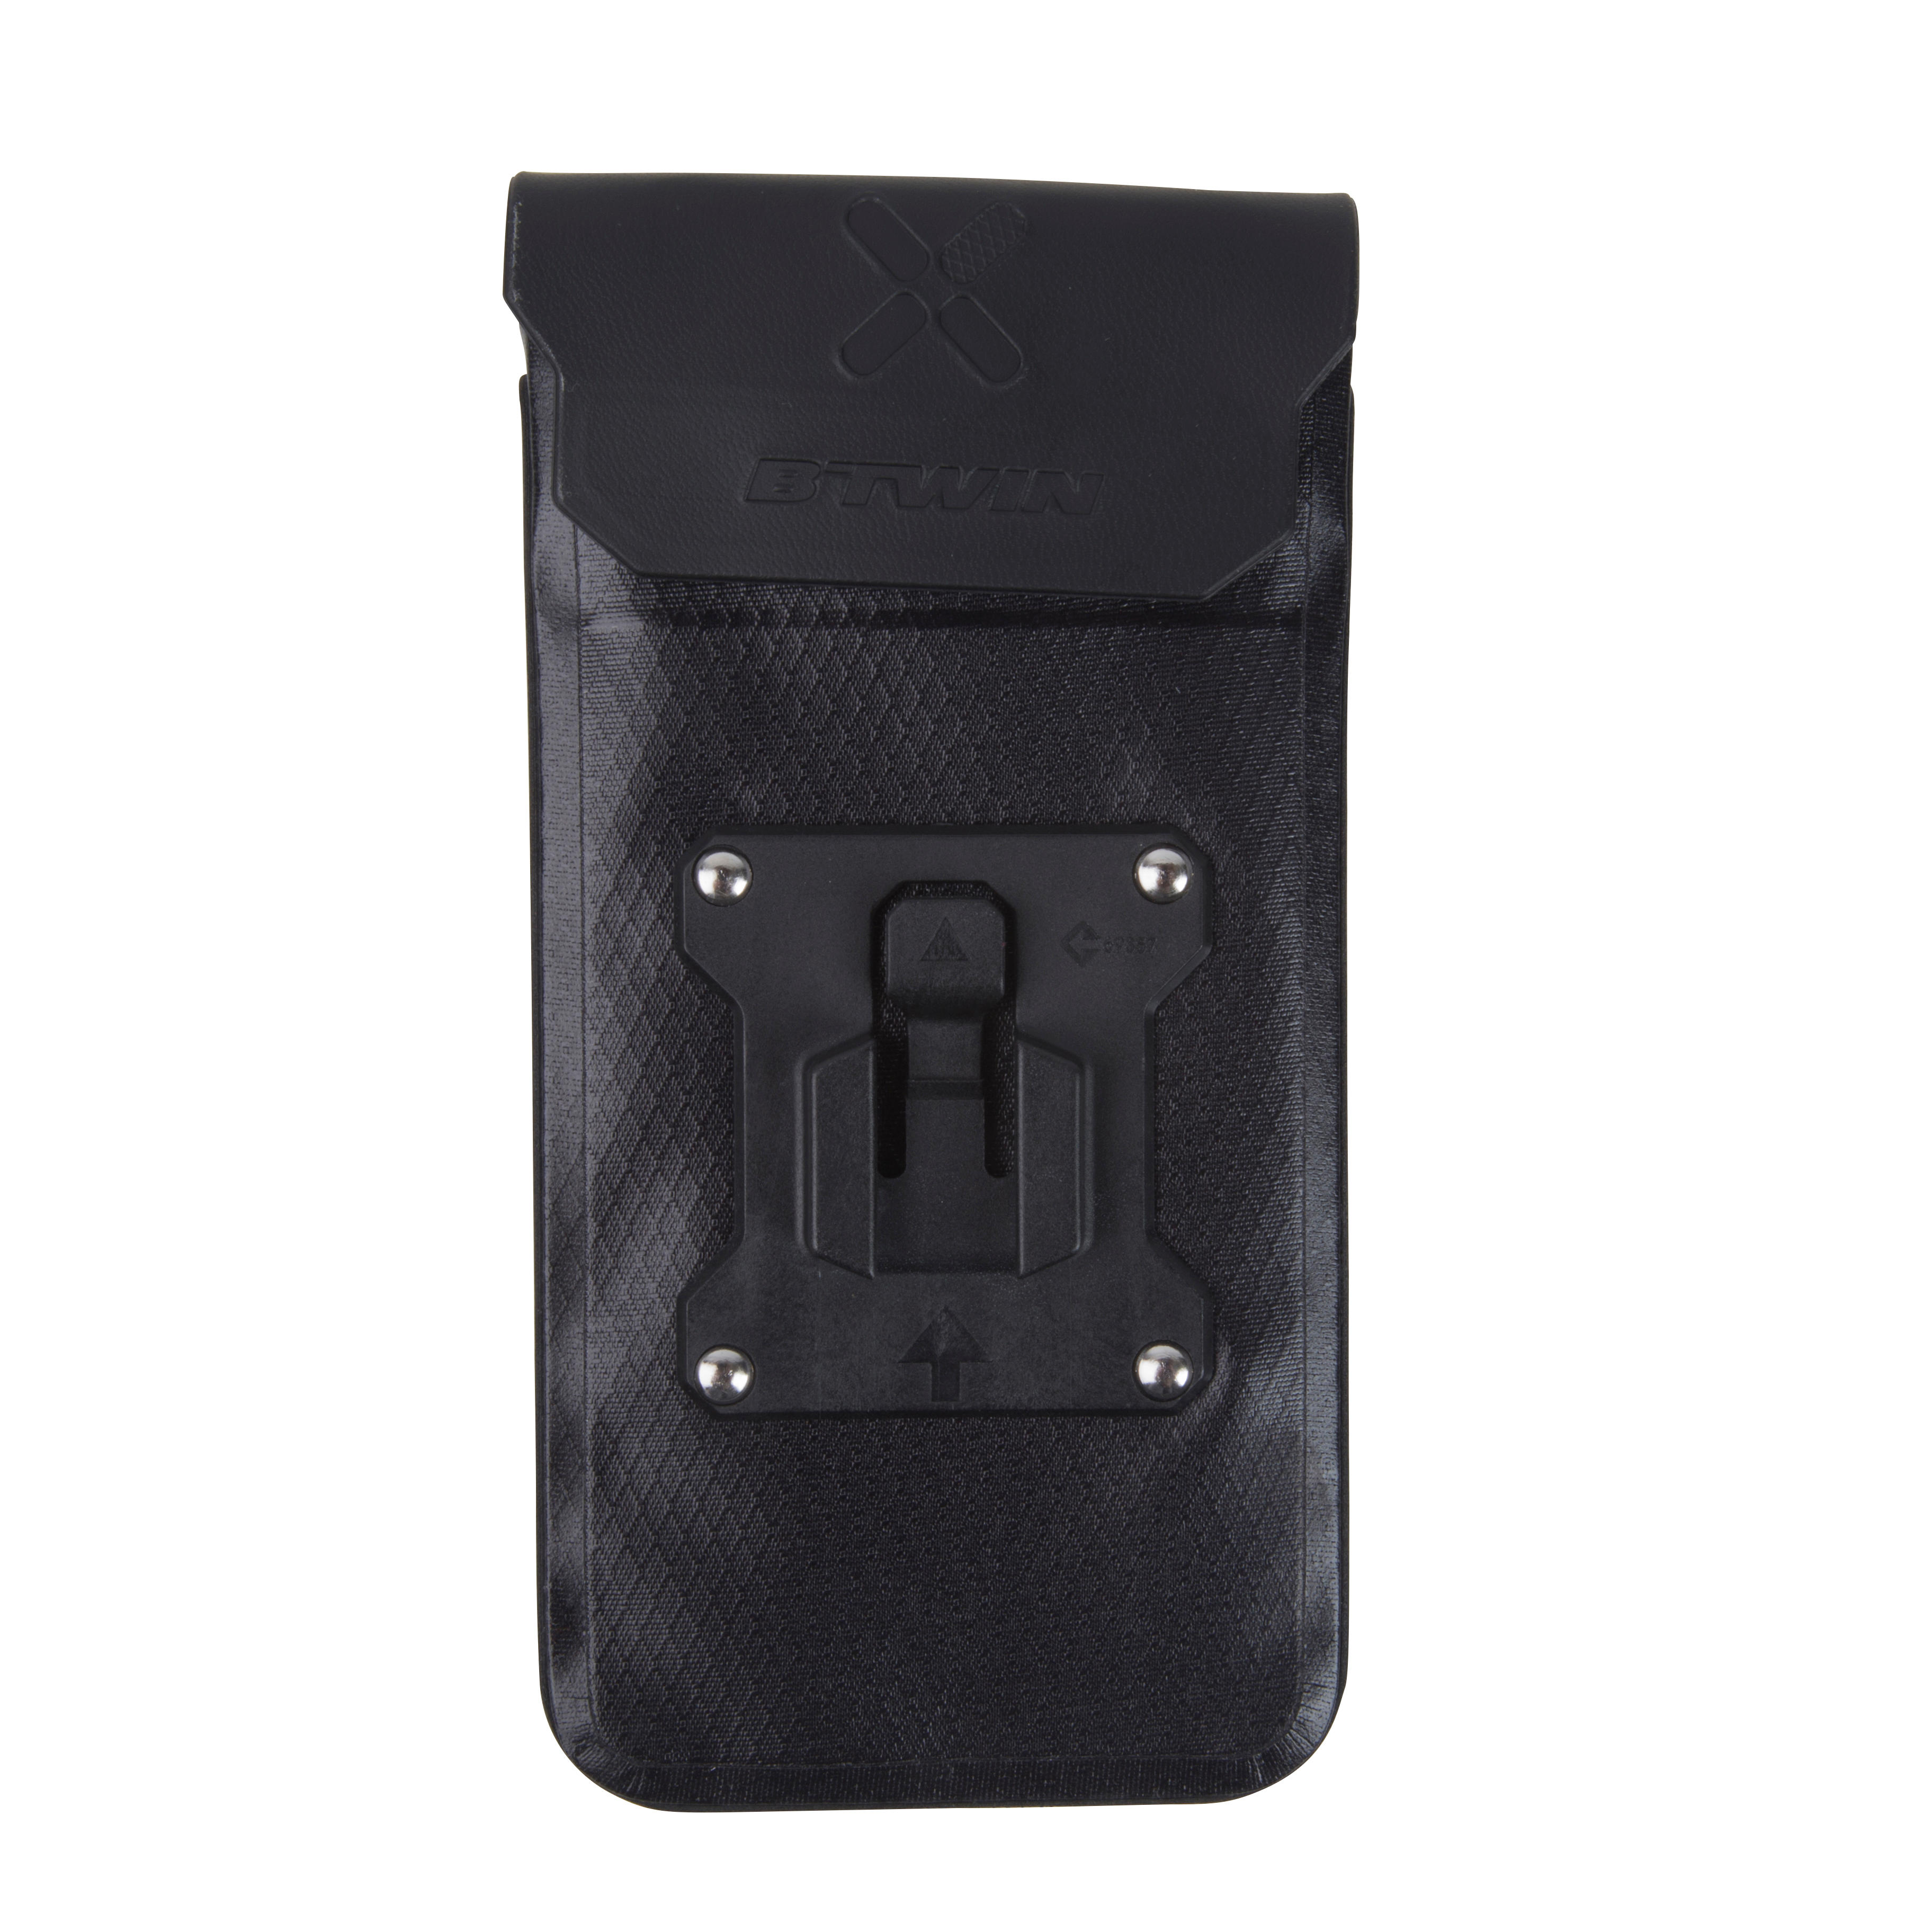 900XL Waterproof Smartphone Holder